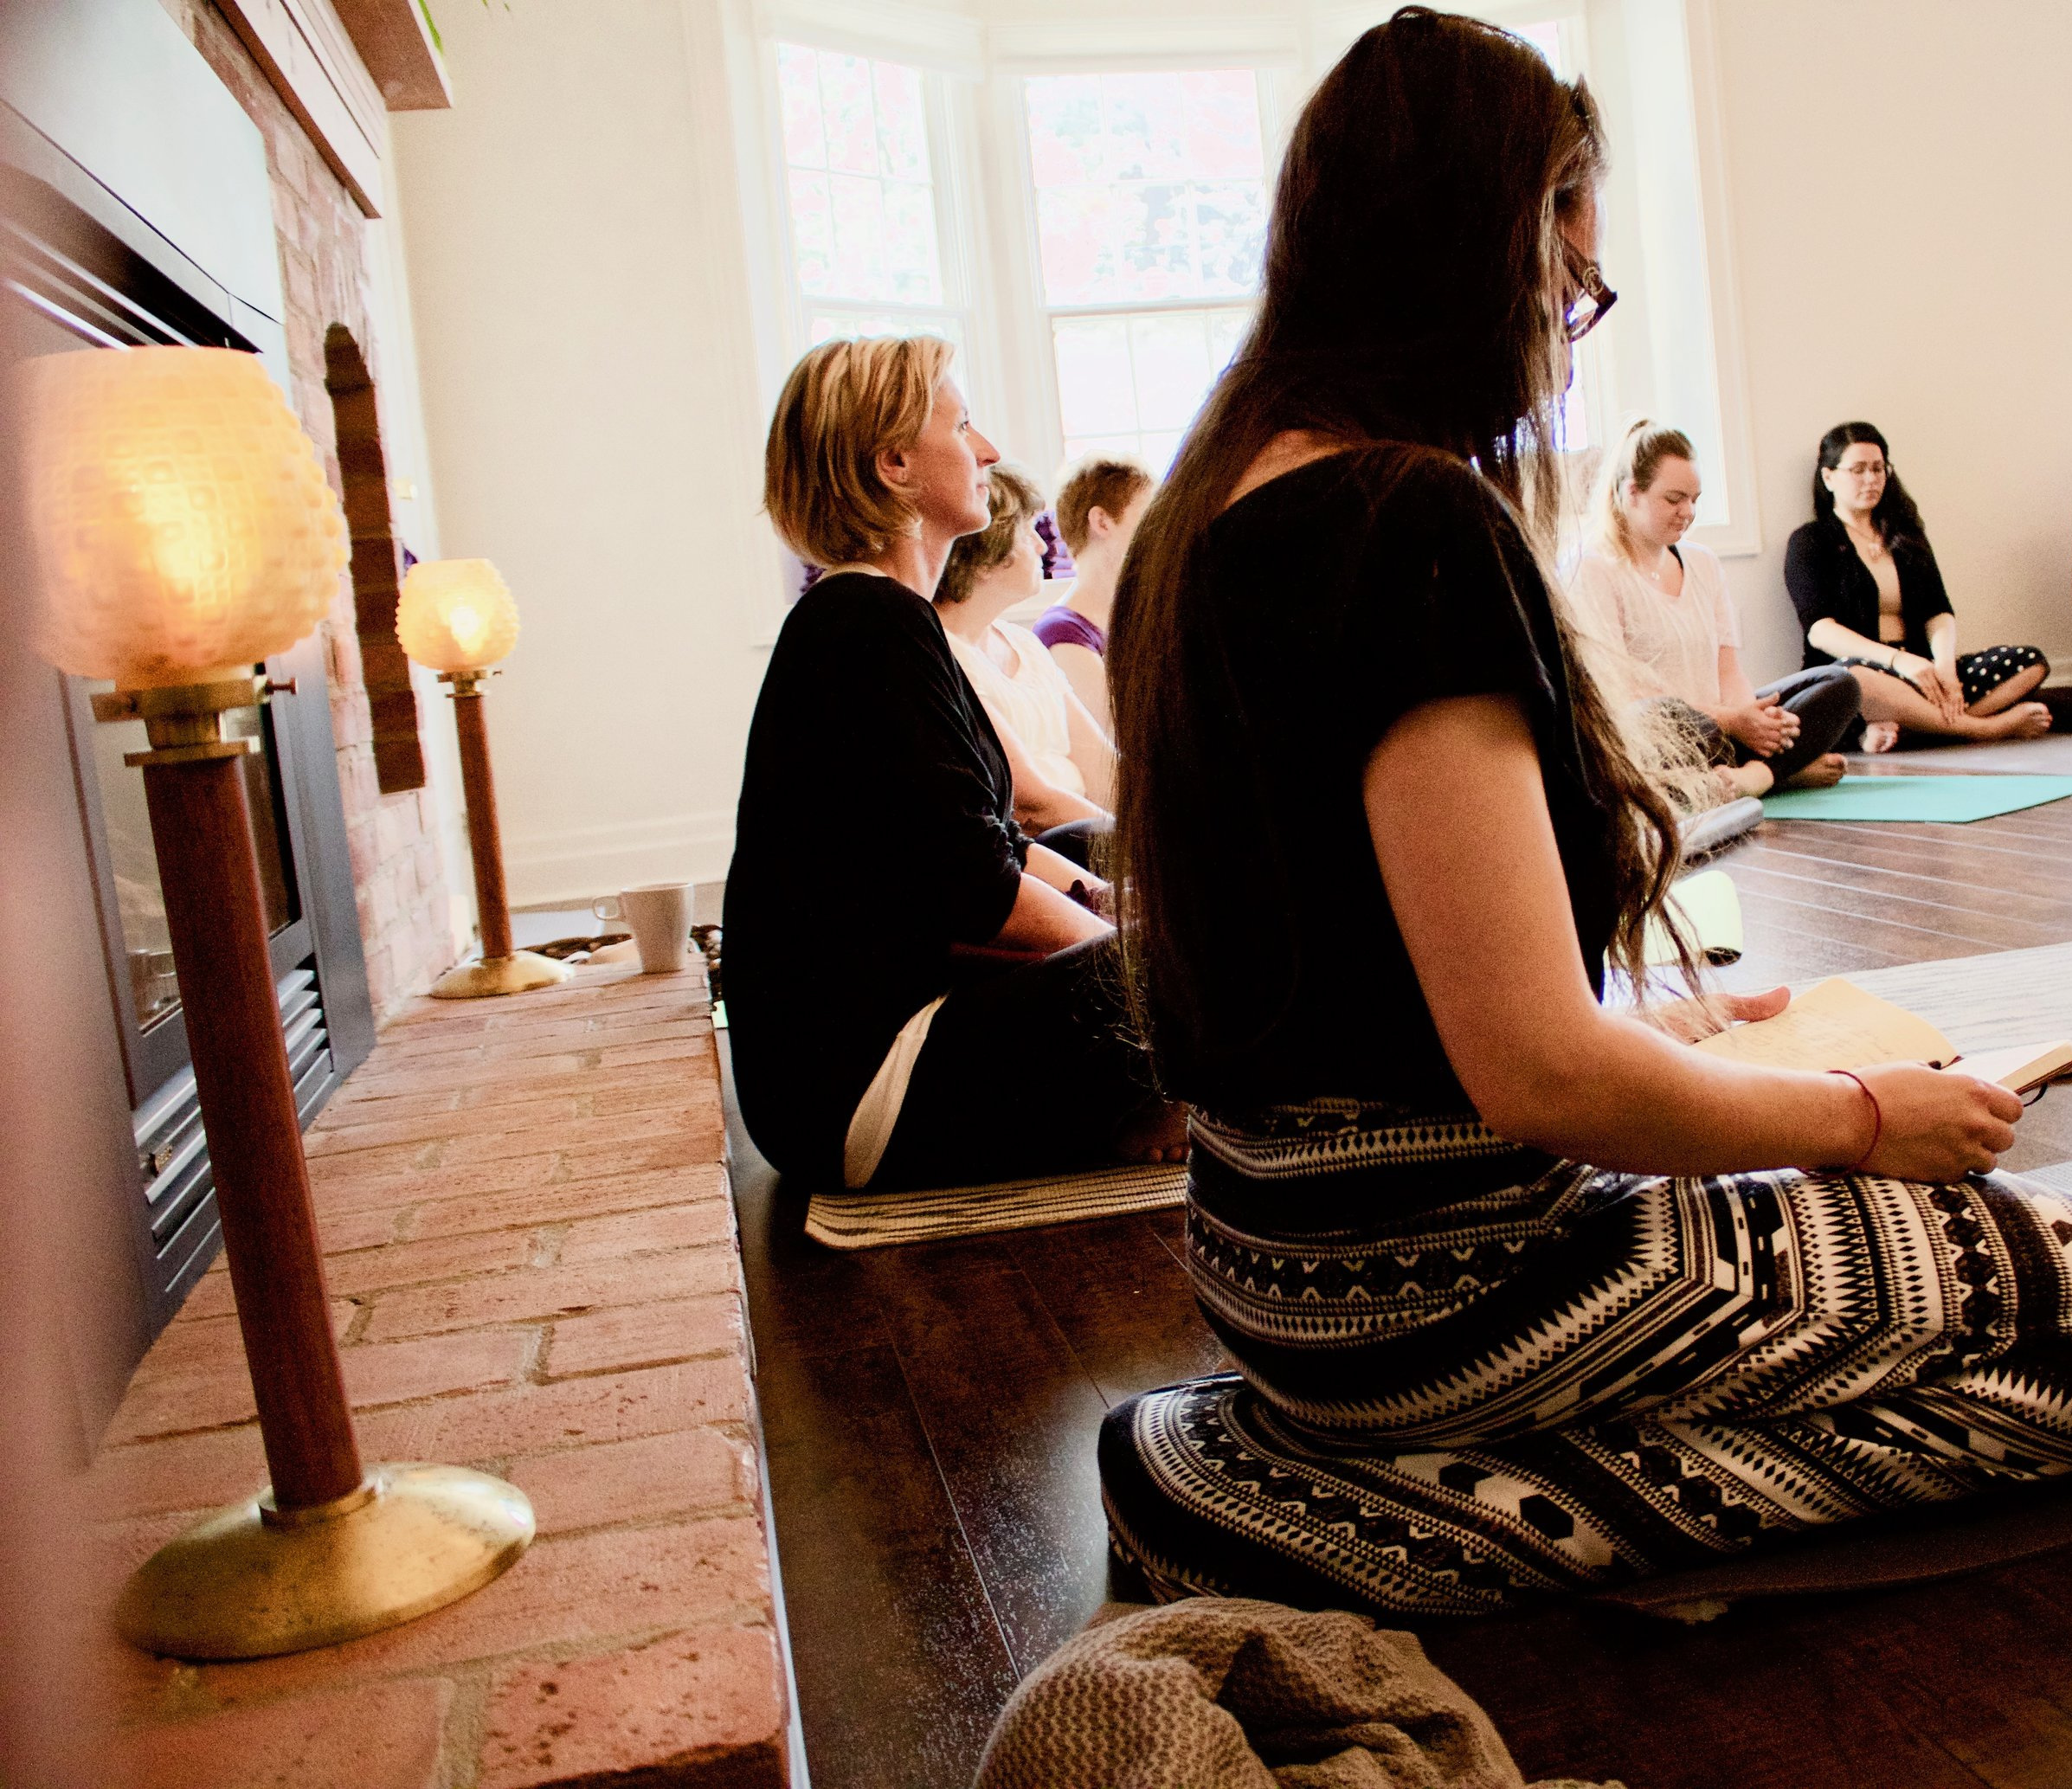 JULY FULL MOON GRATITUDE GATHERING AT INTENTIONS   we welcomed over 30 people in circle